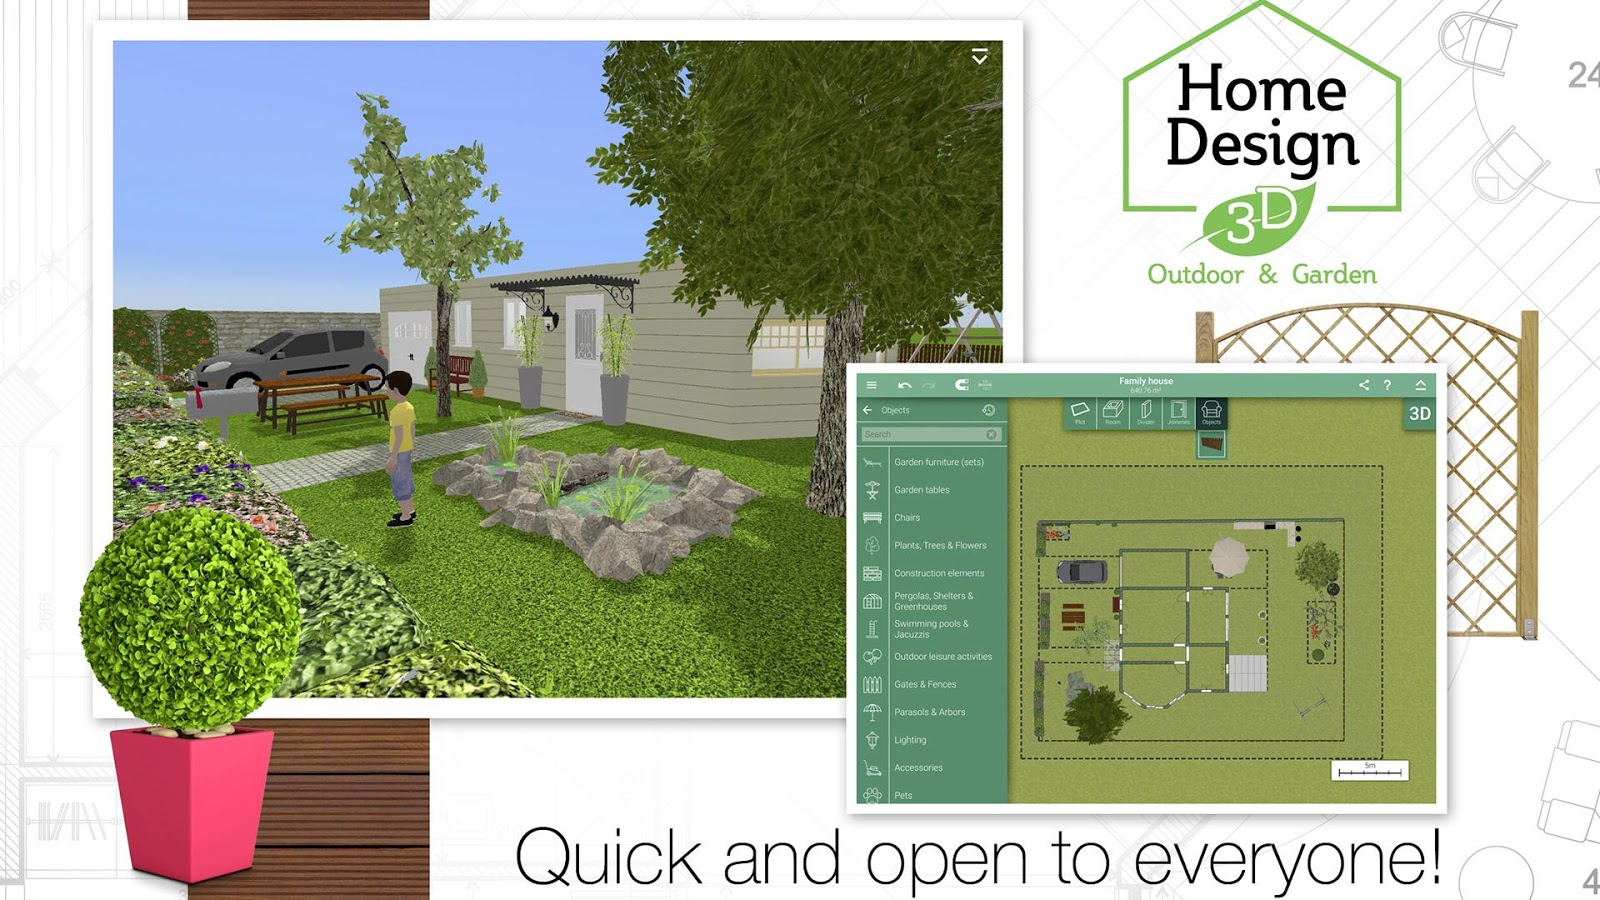 home and garden designs. Home Design 3D Outdoor Garden  screenshot Android Apps on Google Play